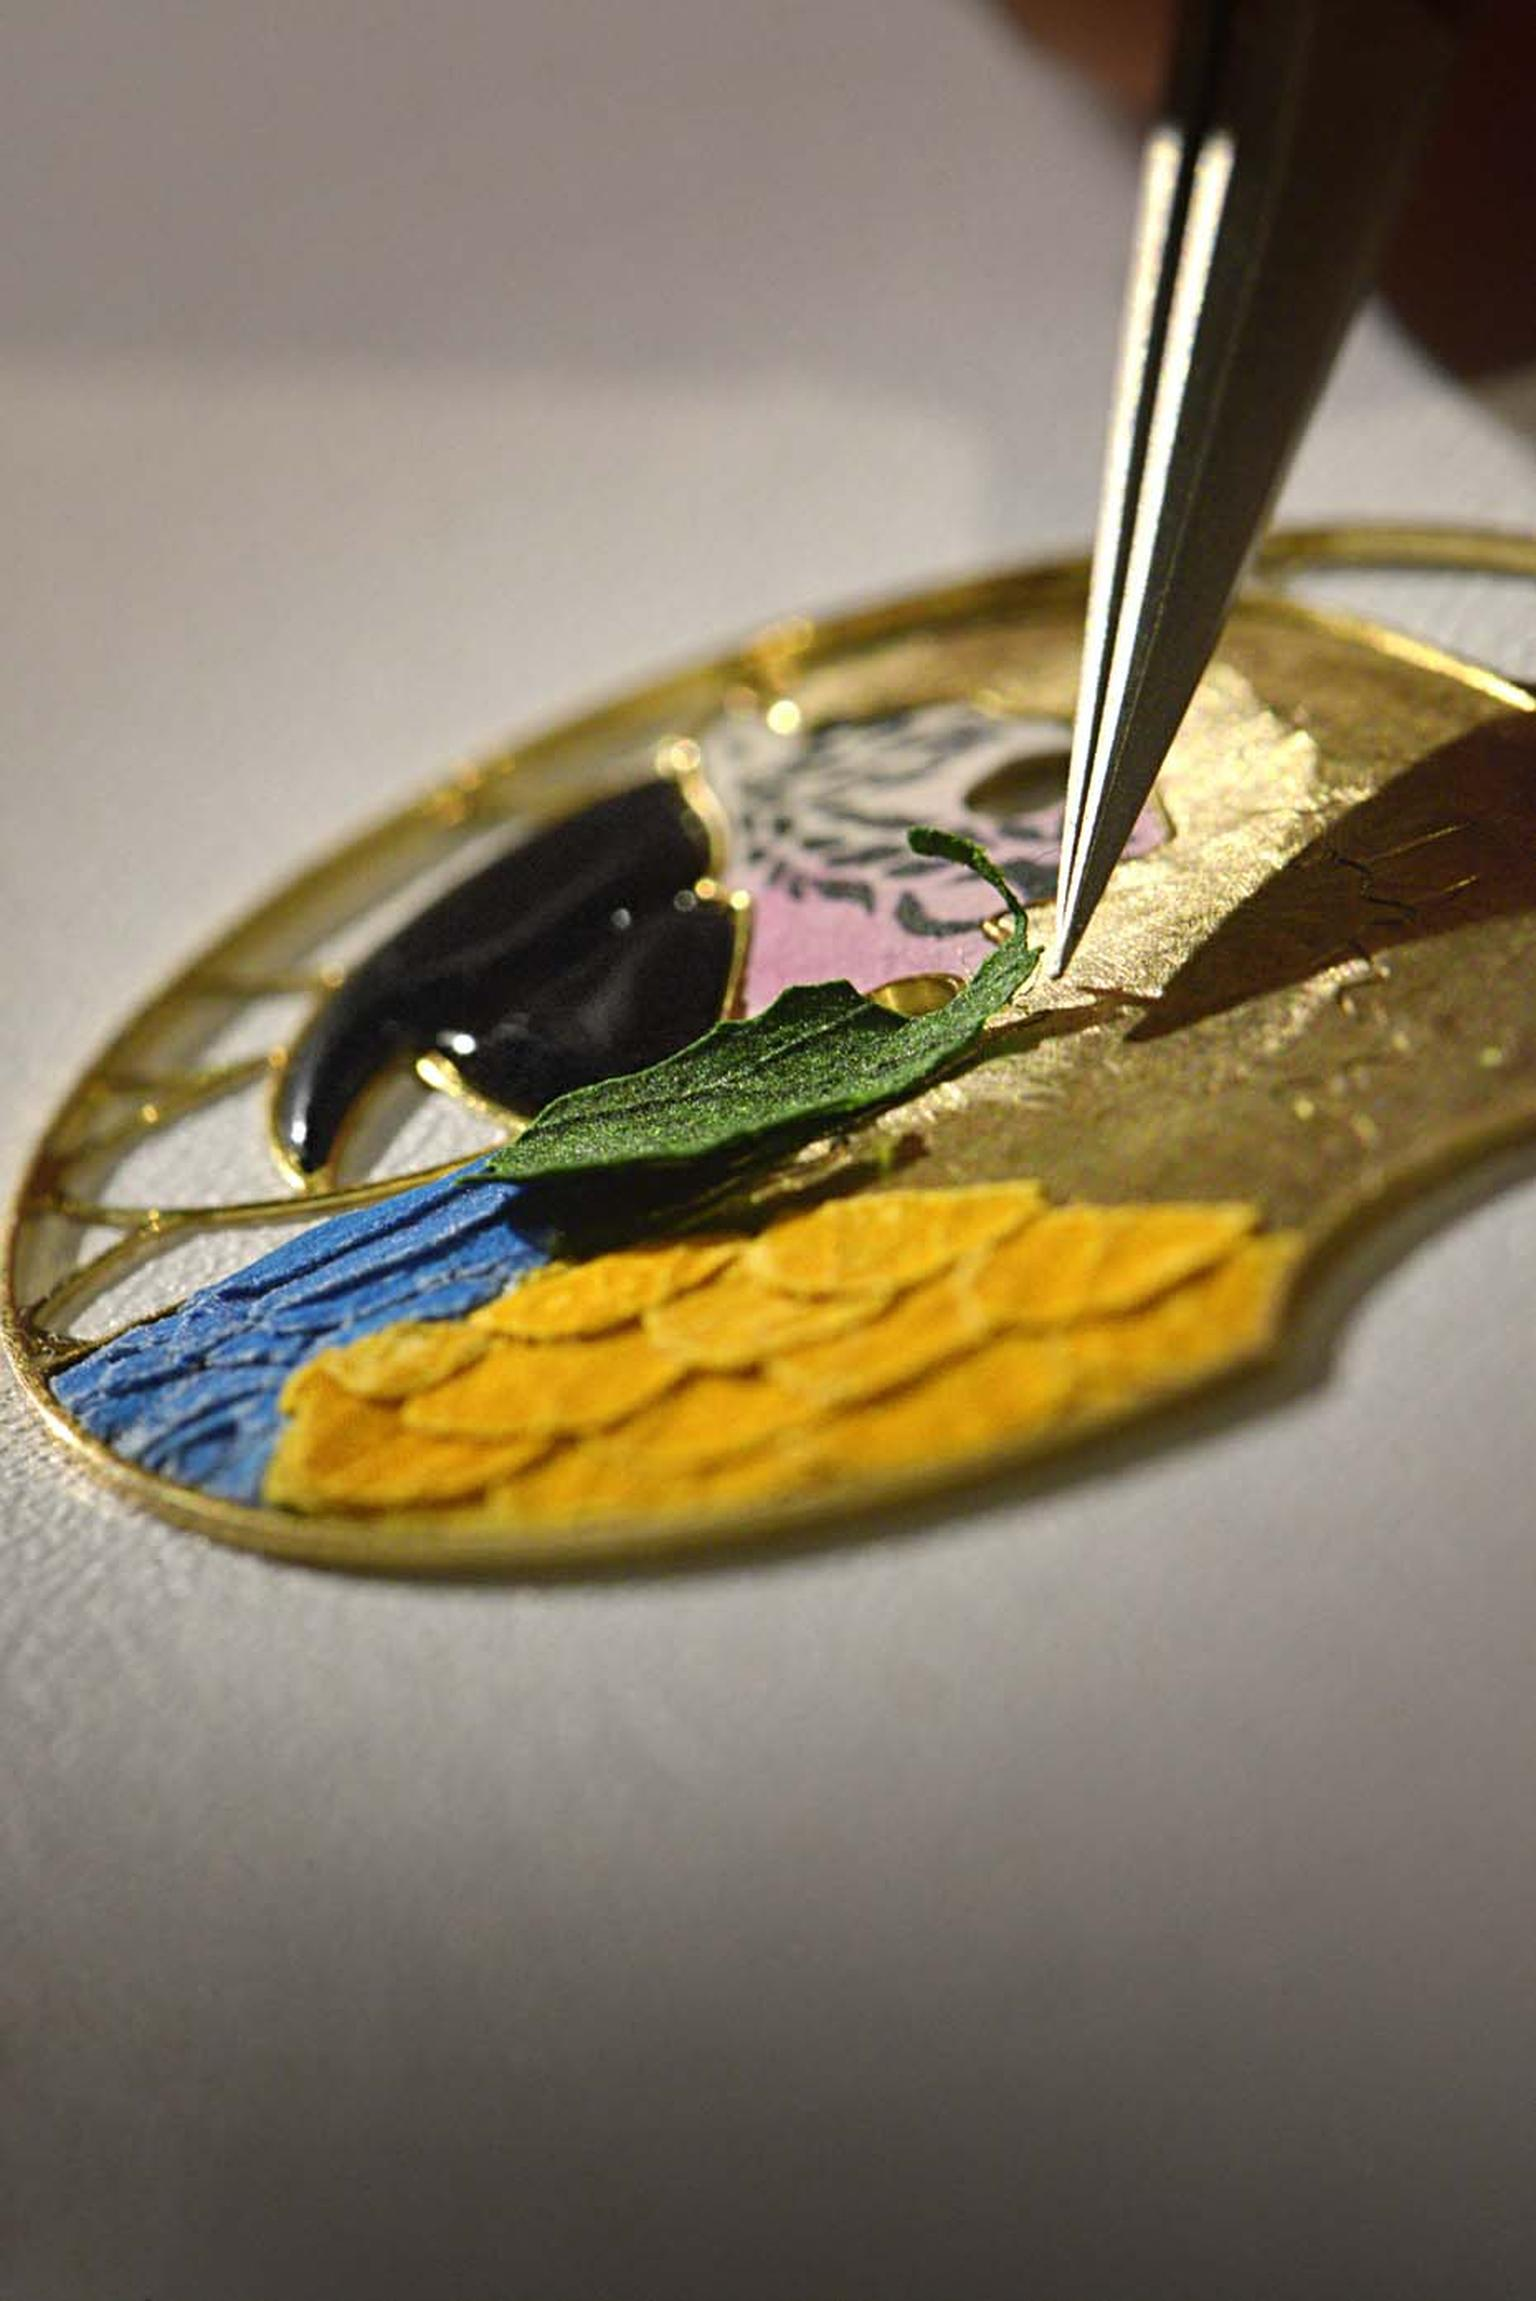 The rare handcraft of wood marquetry was used to create the dial on Cartier's Ballon Bleu de Cartier Floral-Marquetry Parrot watch